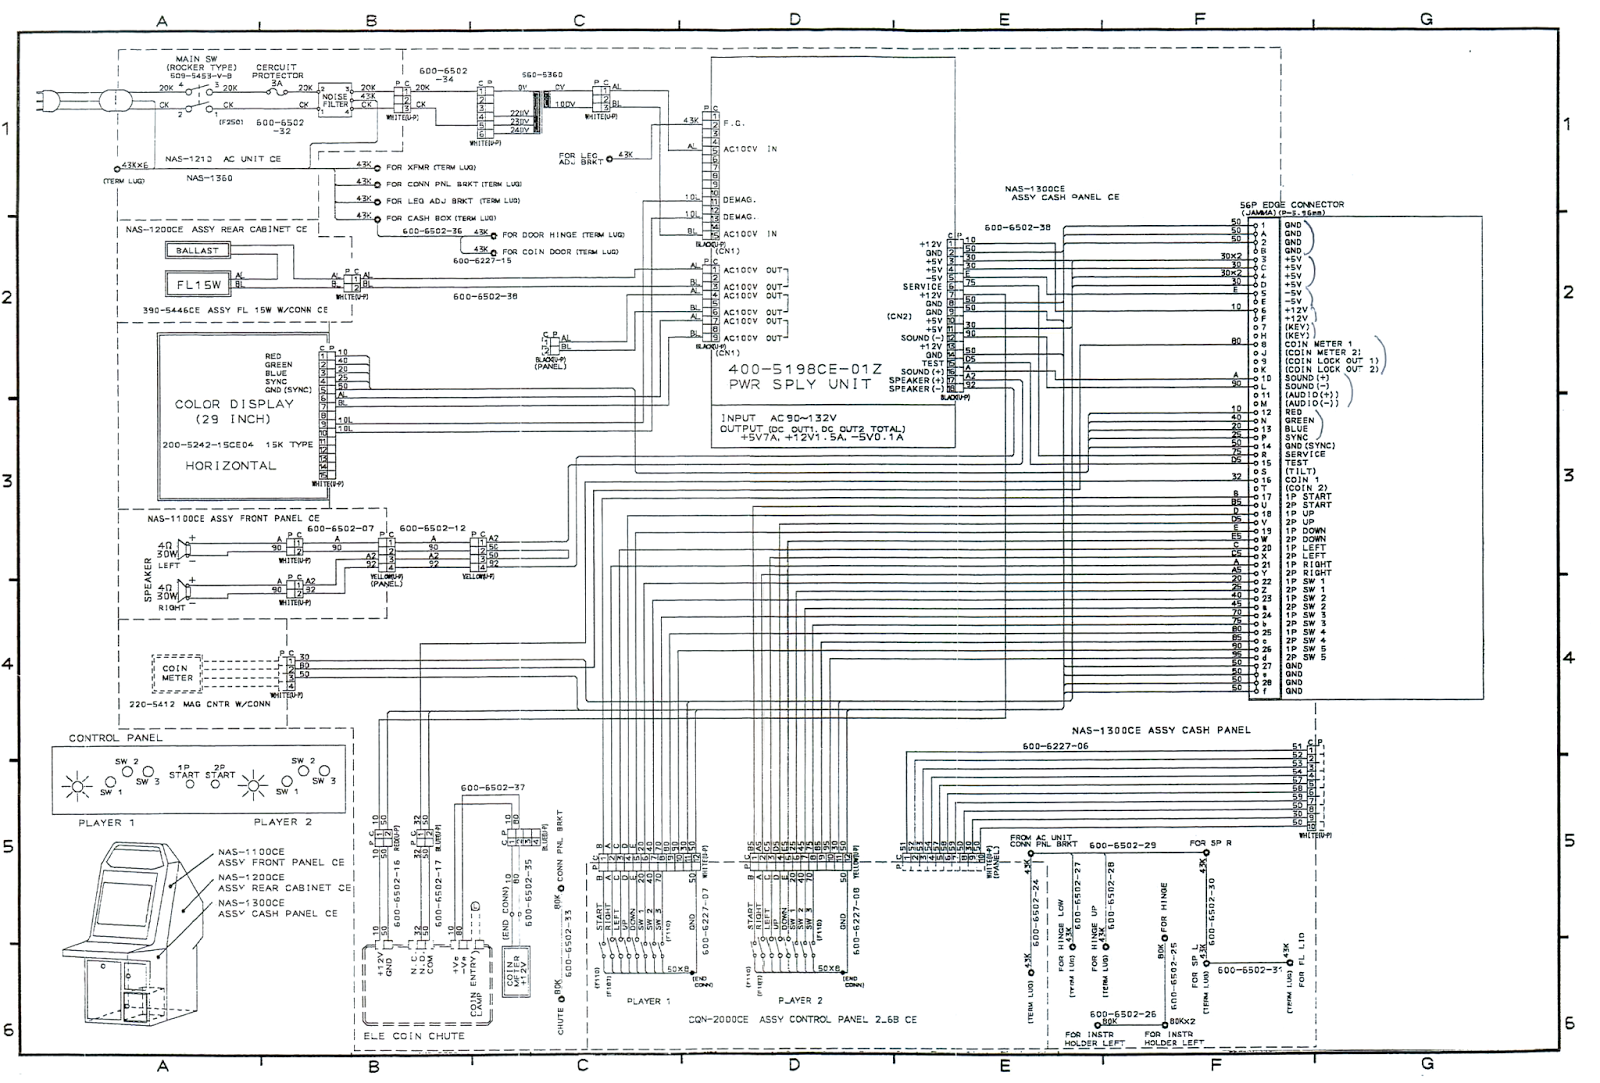 random arcade shit sega new astro city wiring schematic sega new astro city wiring schematic ゠ガニューアストロシティー